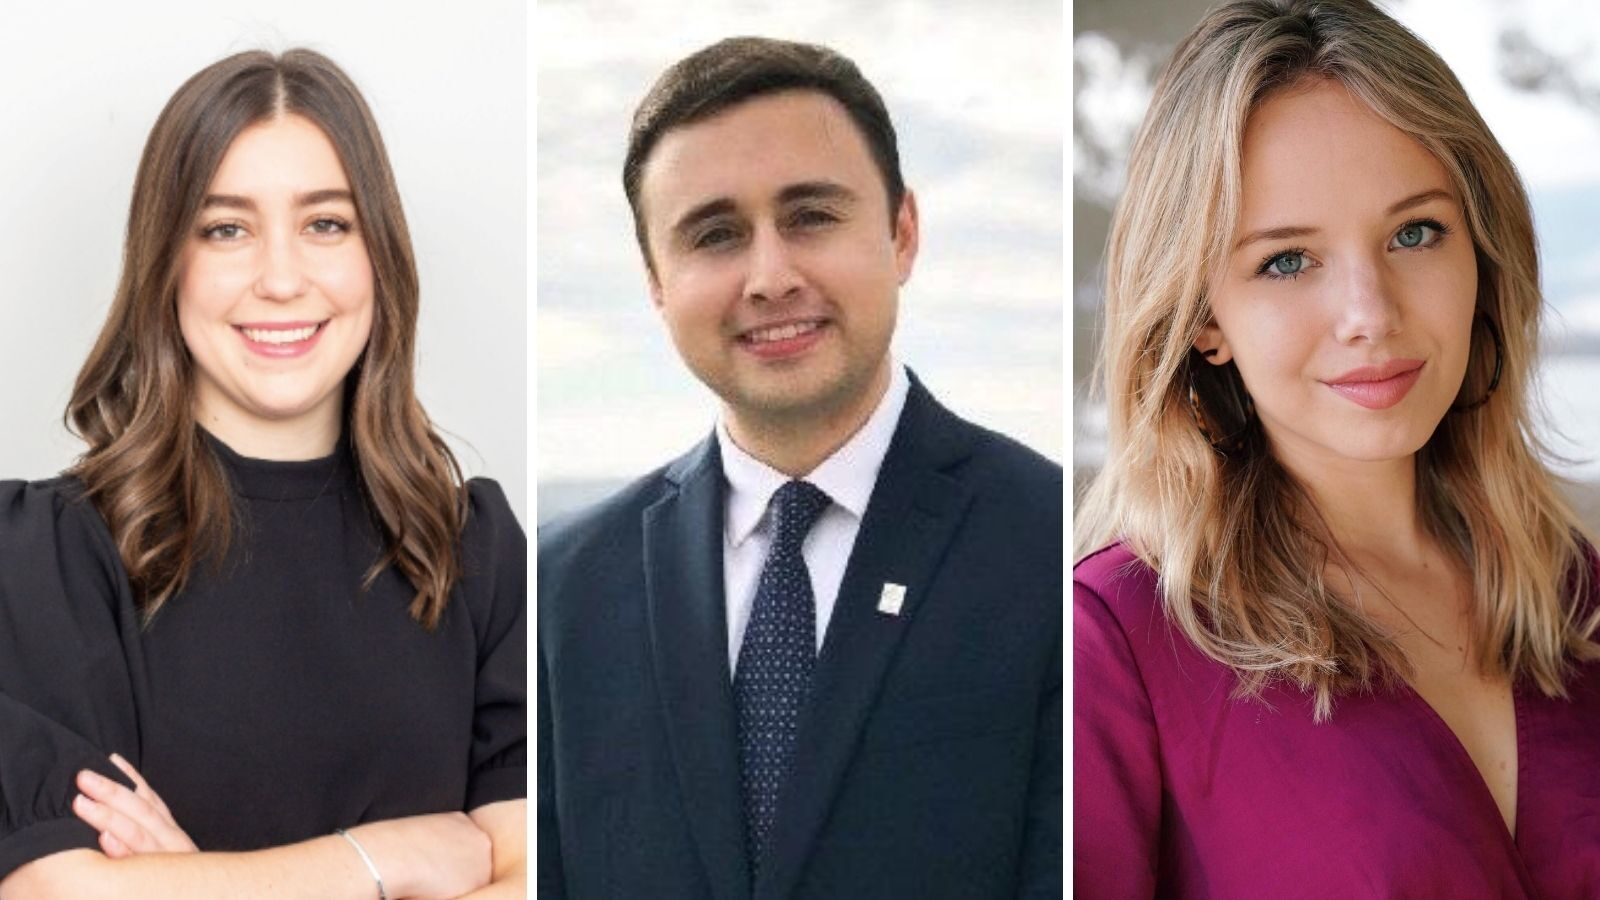 photo of three McCourt students awarded 2020-21 Bryce Harlow Fellowship